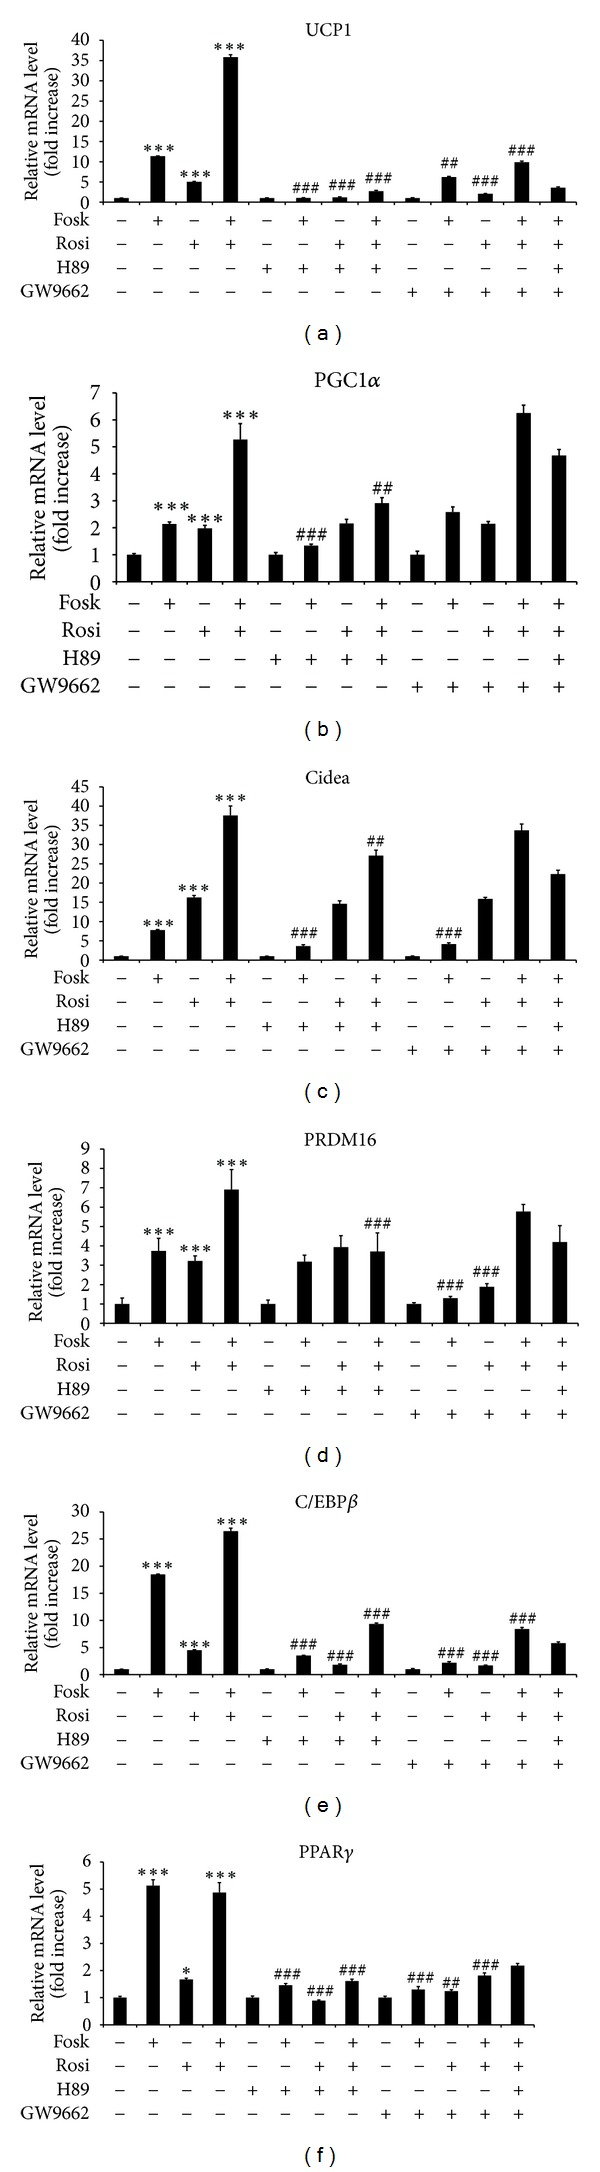 The effect of forskolin and rosiglitazone on mRNA expression of (a) UCP1, (b) PGC1 α , (c) Cidea, (d) PRDM16, (e) C/EBP β , and (f) PPAR γ is mediated by PKA and PPAR γ dependent pathways. HIB-1B cells were grown to confluence and then treated with H89 (10 μ M) for 1 hour or GW9662 (30 μ M) for 3 hours prior to and during addition of rosiglitazone (Rosi) (10 μ M) for 24 hours, or forskolin (Fosk) (10 μ M) for the final 3 hours of rosiglitazone treatment, before RNA extraction, as indicated. All drugs were added in serum-free medium. Controls were treated with DMSO. Gene expression levels were analysed by quantitative real-time PCR and normalized against 36B4 expression. Error bar means the mean ± SEM of triplicate observations within a single experiment performed in triplicate. *** Significant difference P